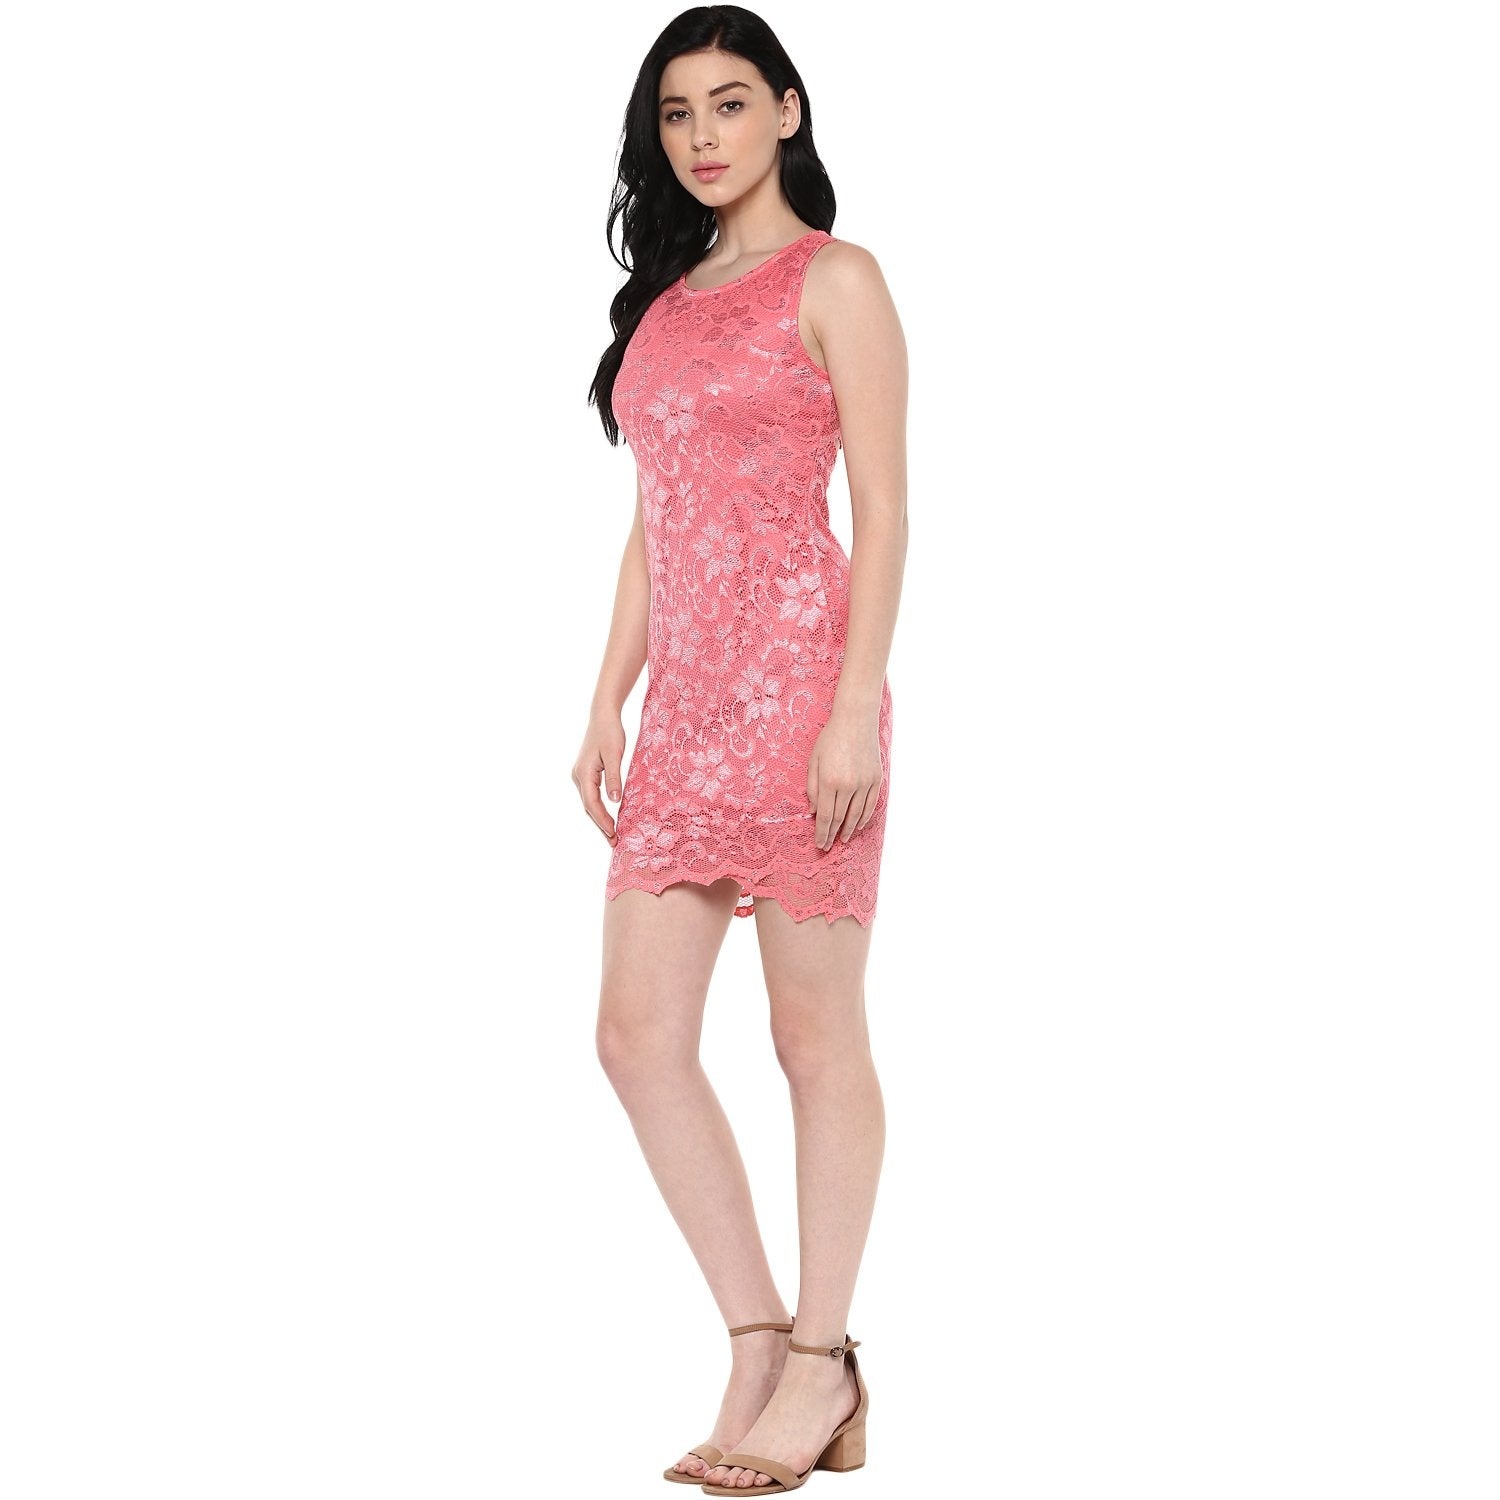 Jaune Lace Cut-Out Back Rose Pink Bodycon Dress